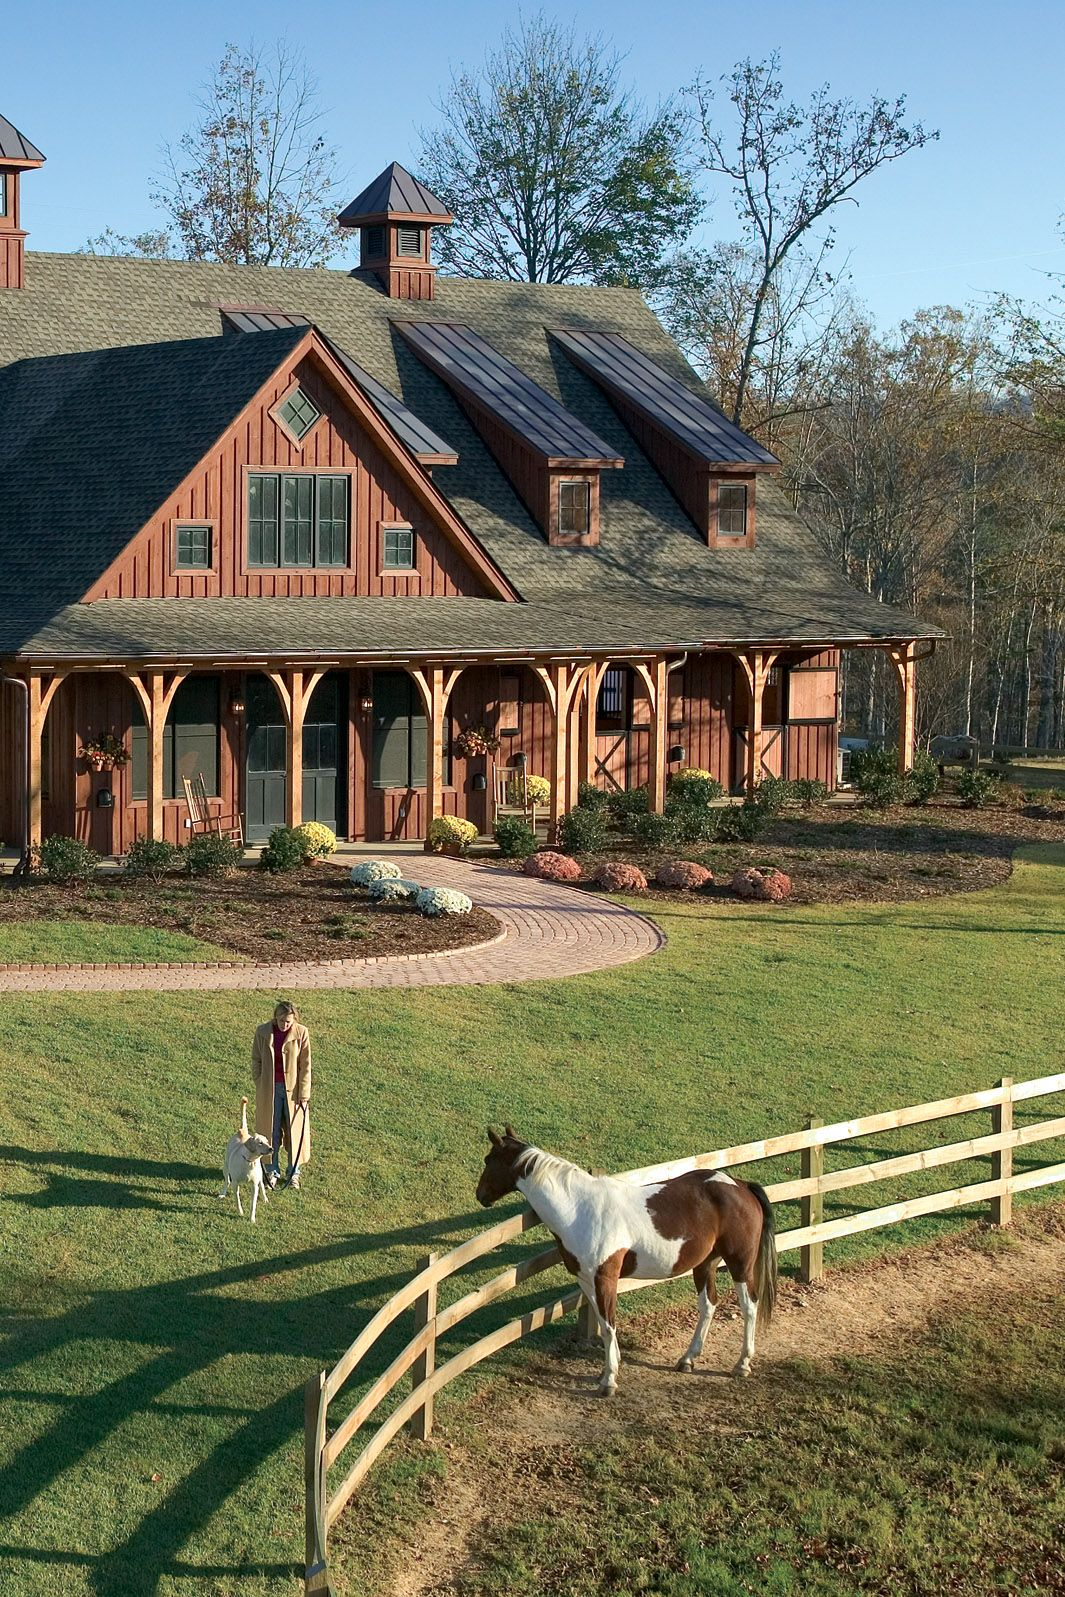 Best 25 Centered Riding Ideas On Pinterest Horse Barns